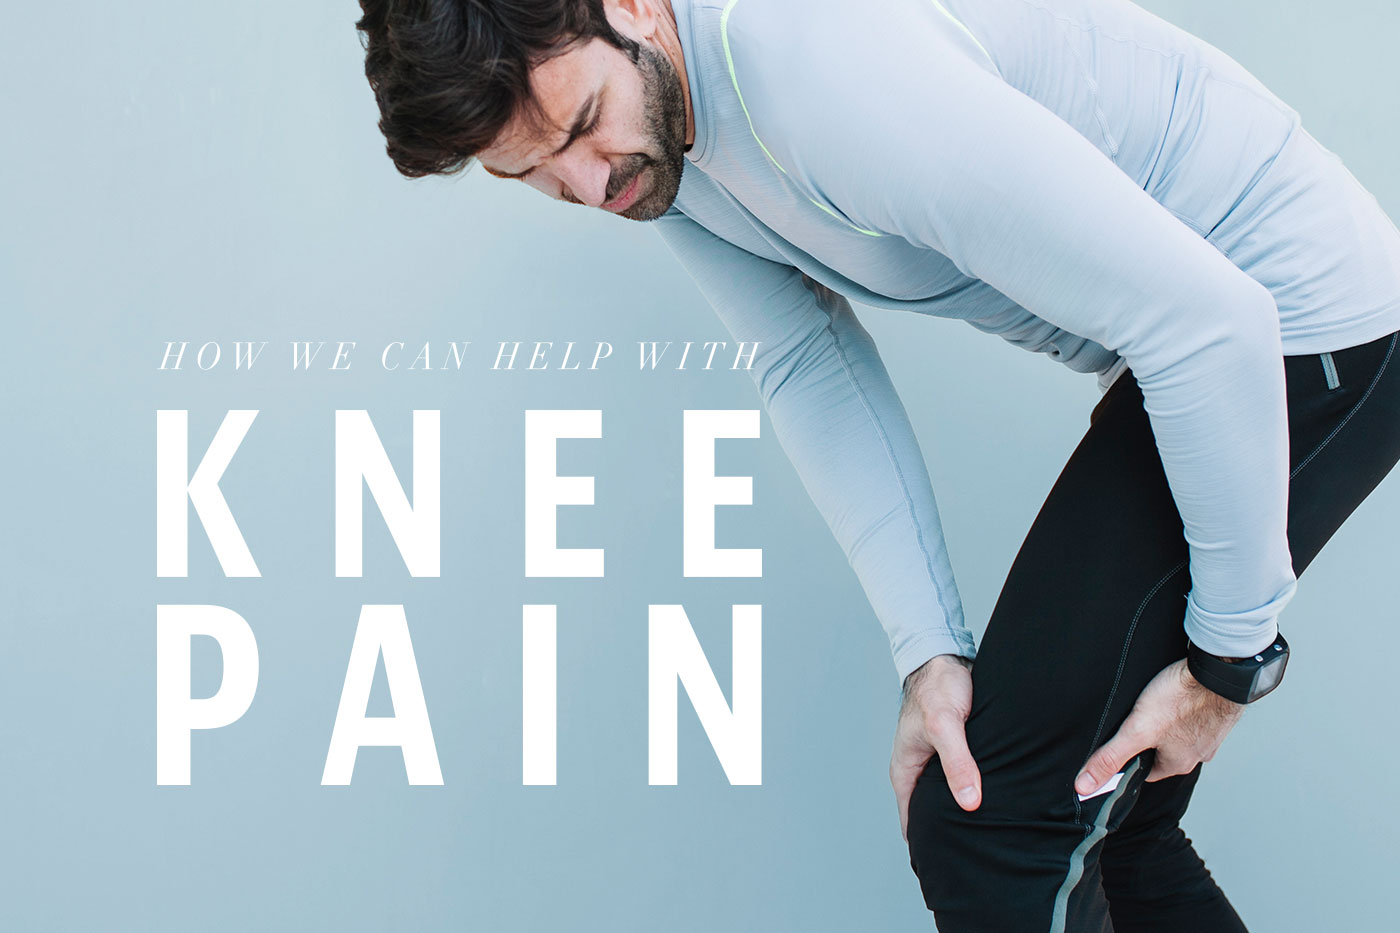 How We Can Help with Chronic Knee Pain